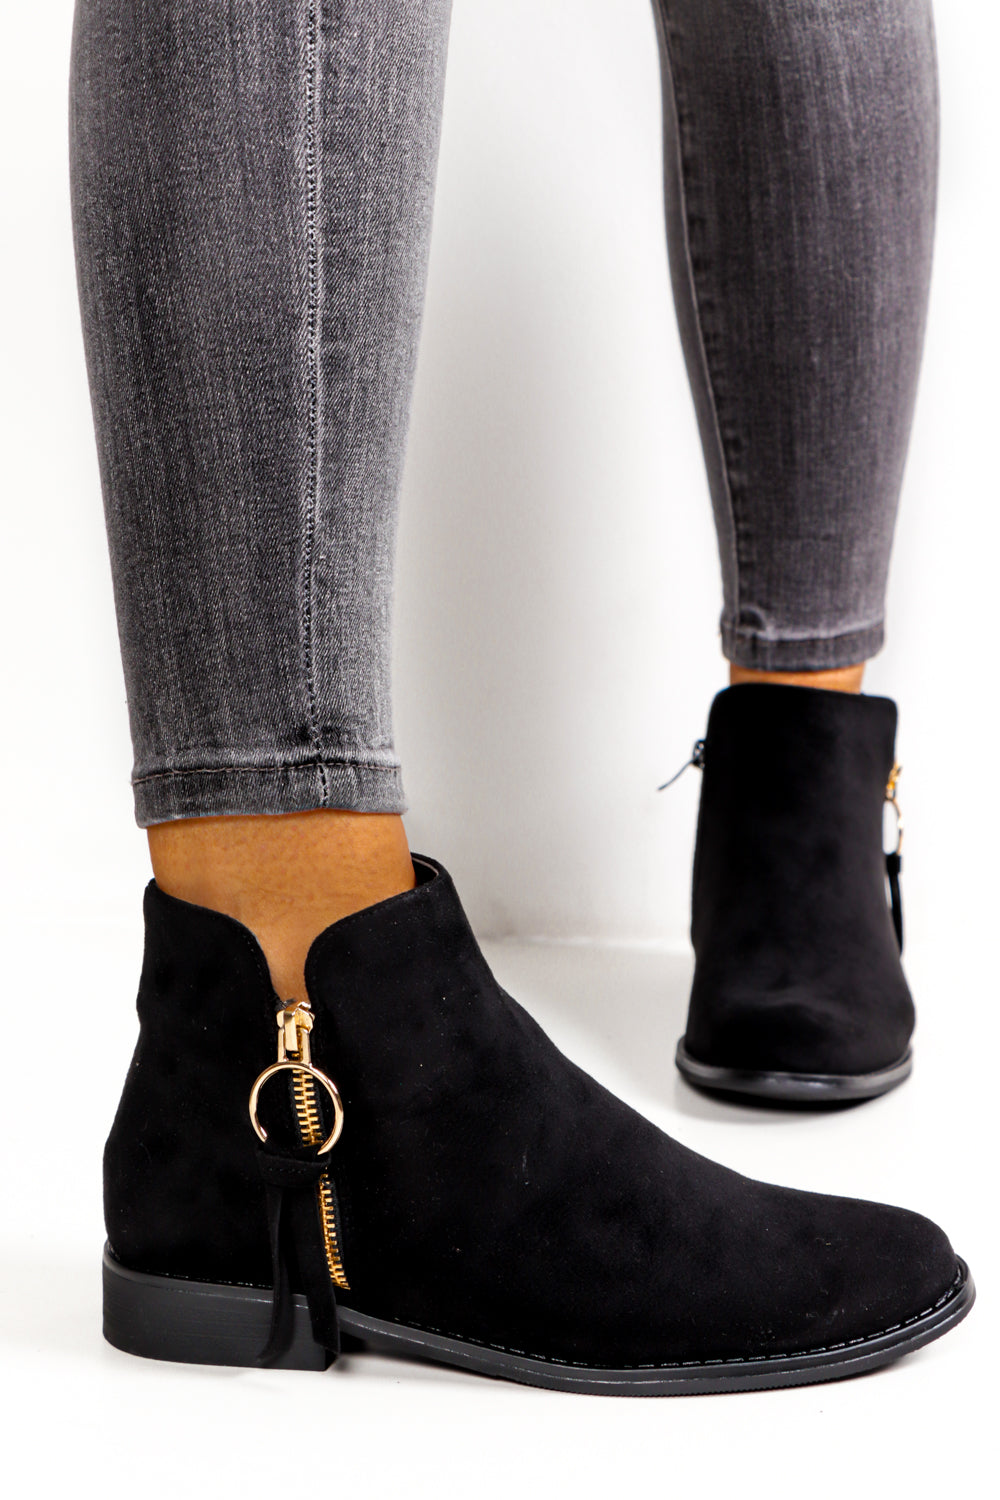 These Boots Are Suede For Walking - Black Suede Boot